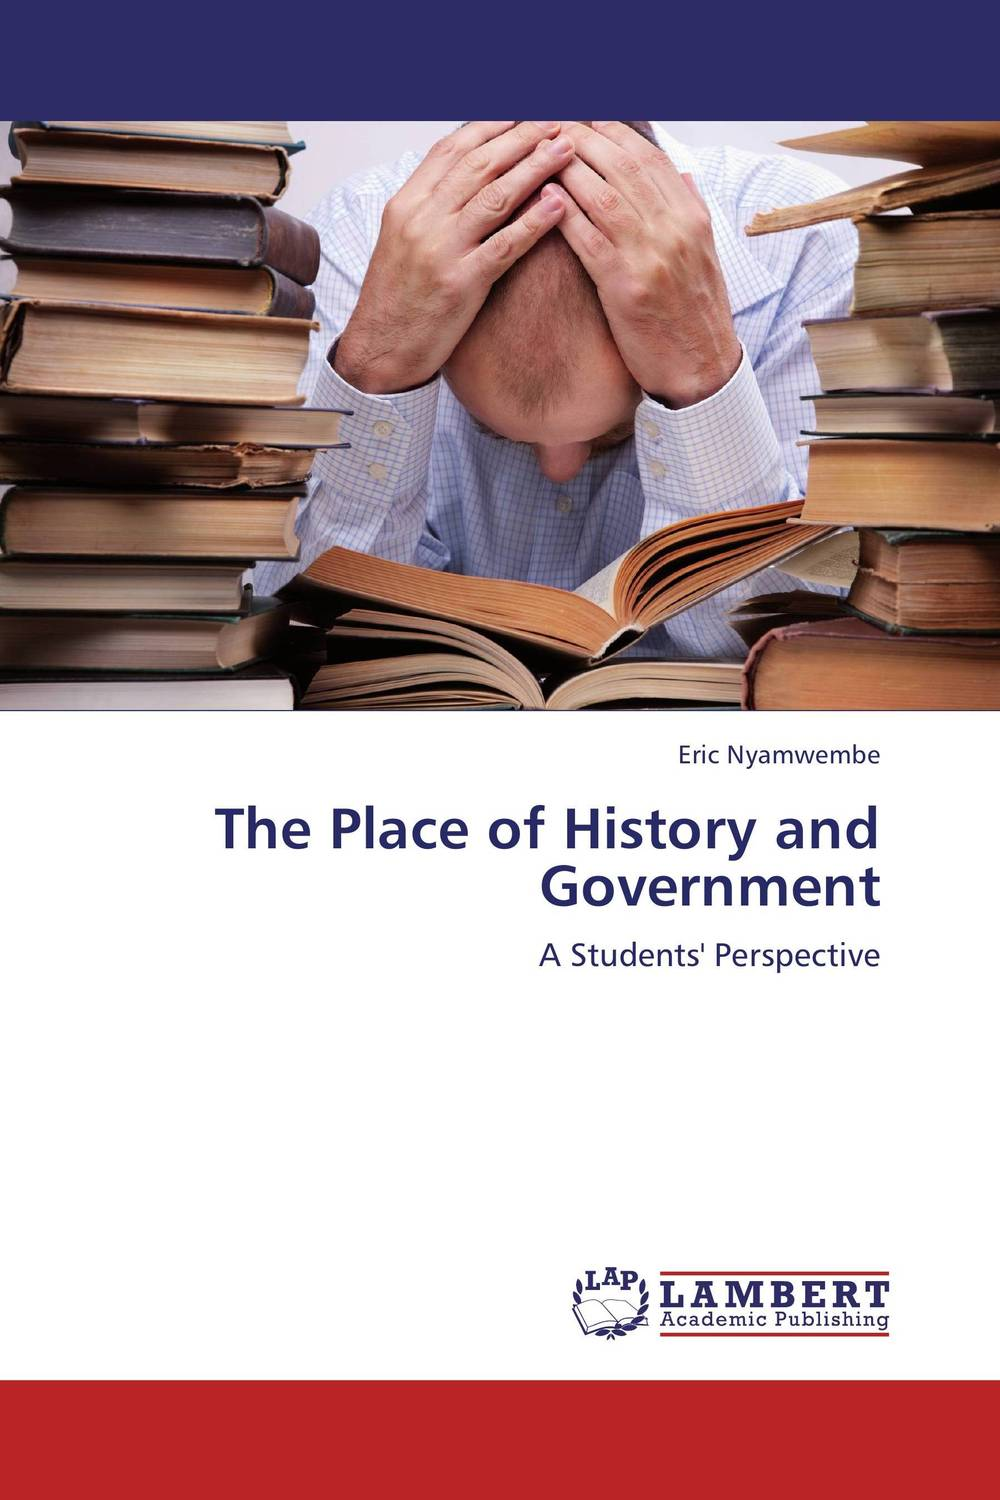 The Place of History and Government katherine mcknight s common core literacy for ela history social studies and the humanities strategies to deepen content knowledge grades 6 12